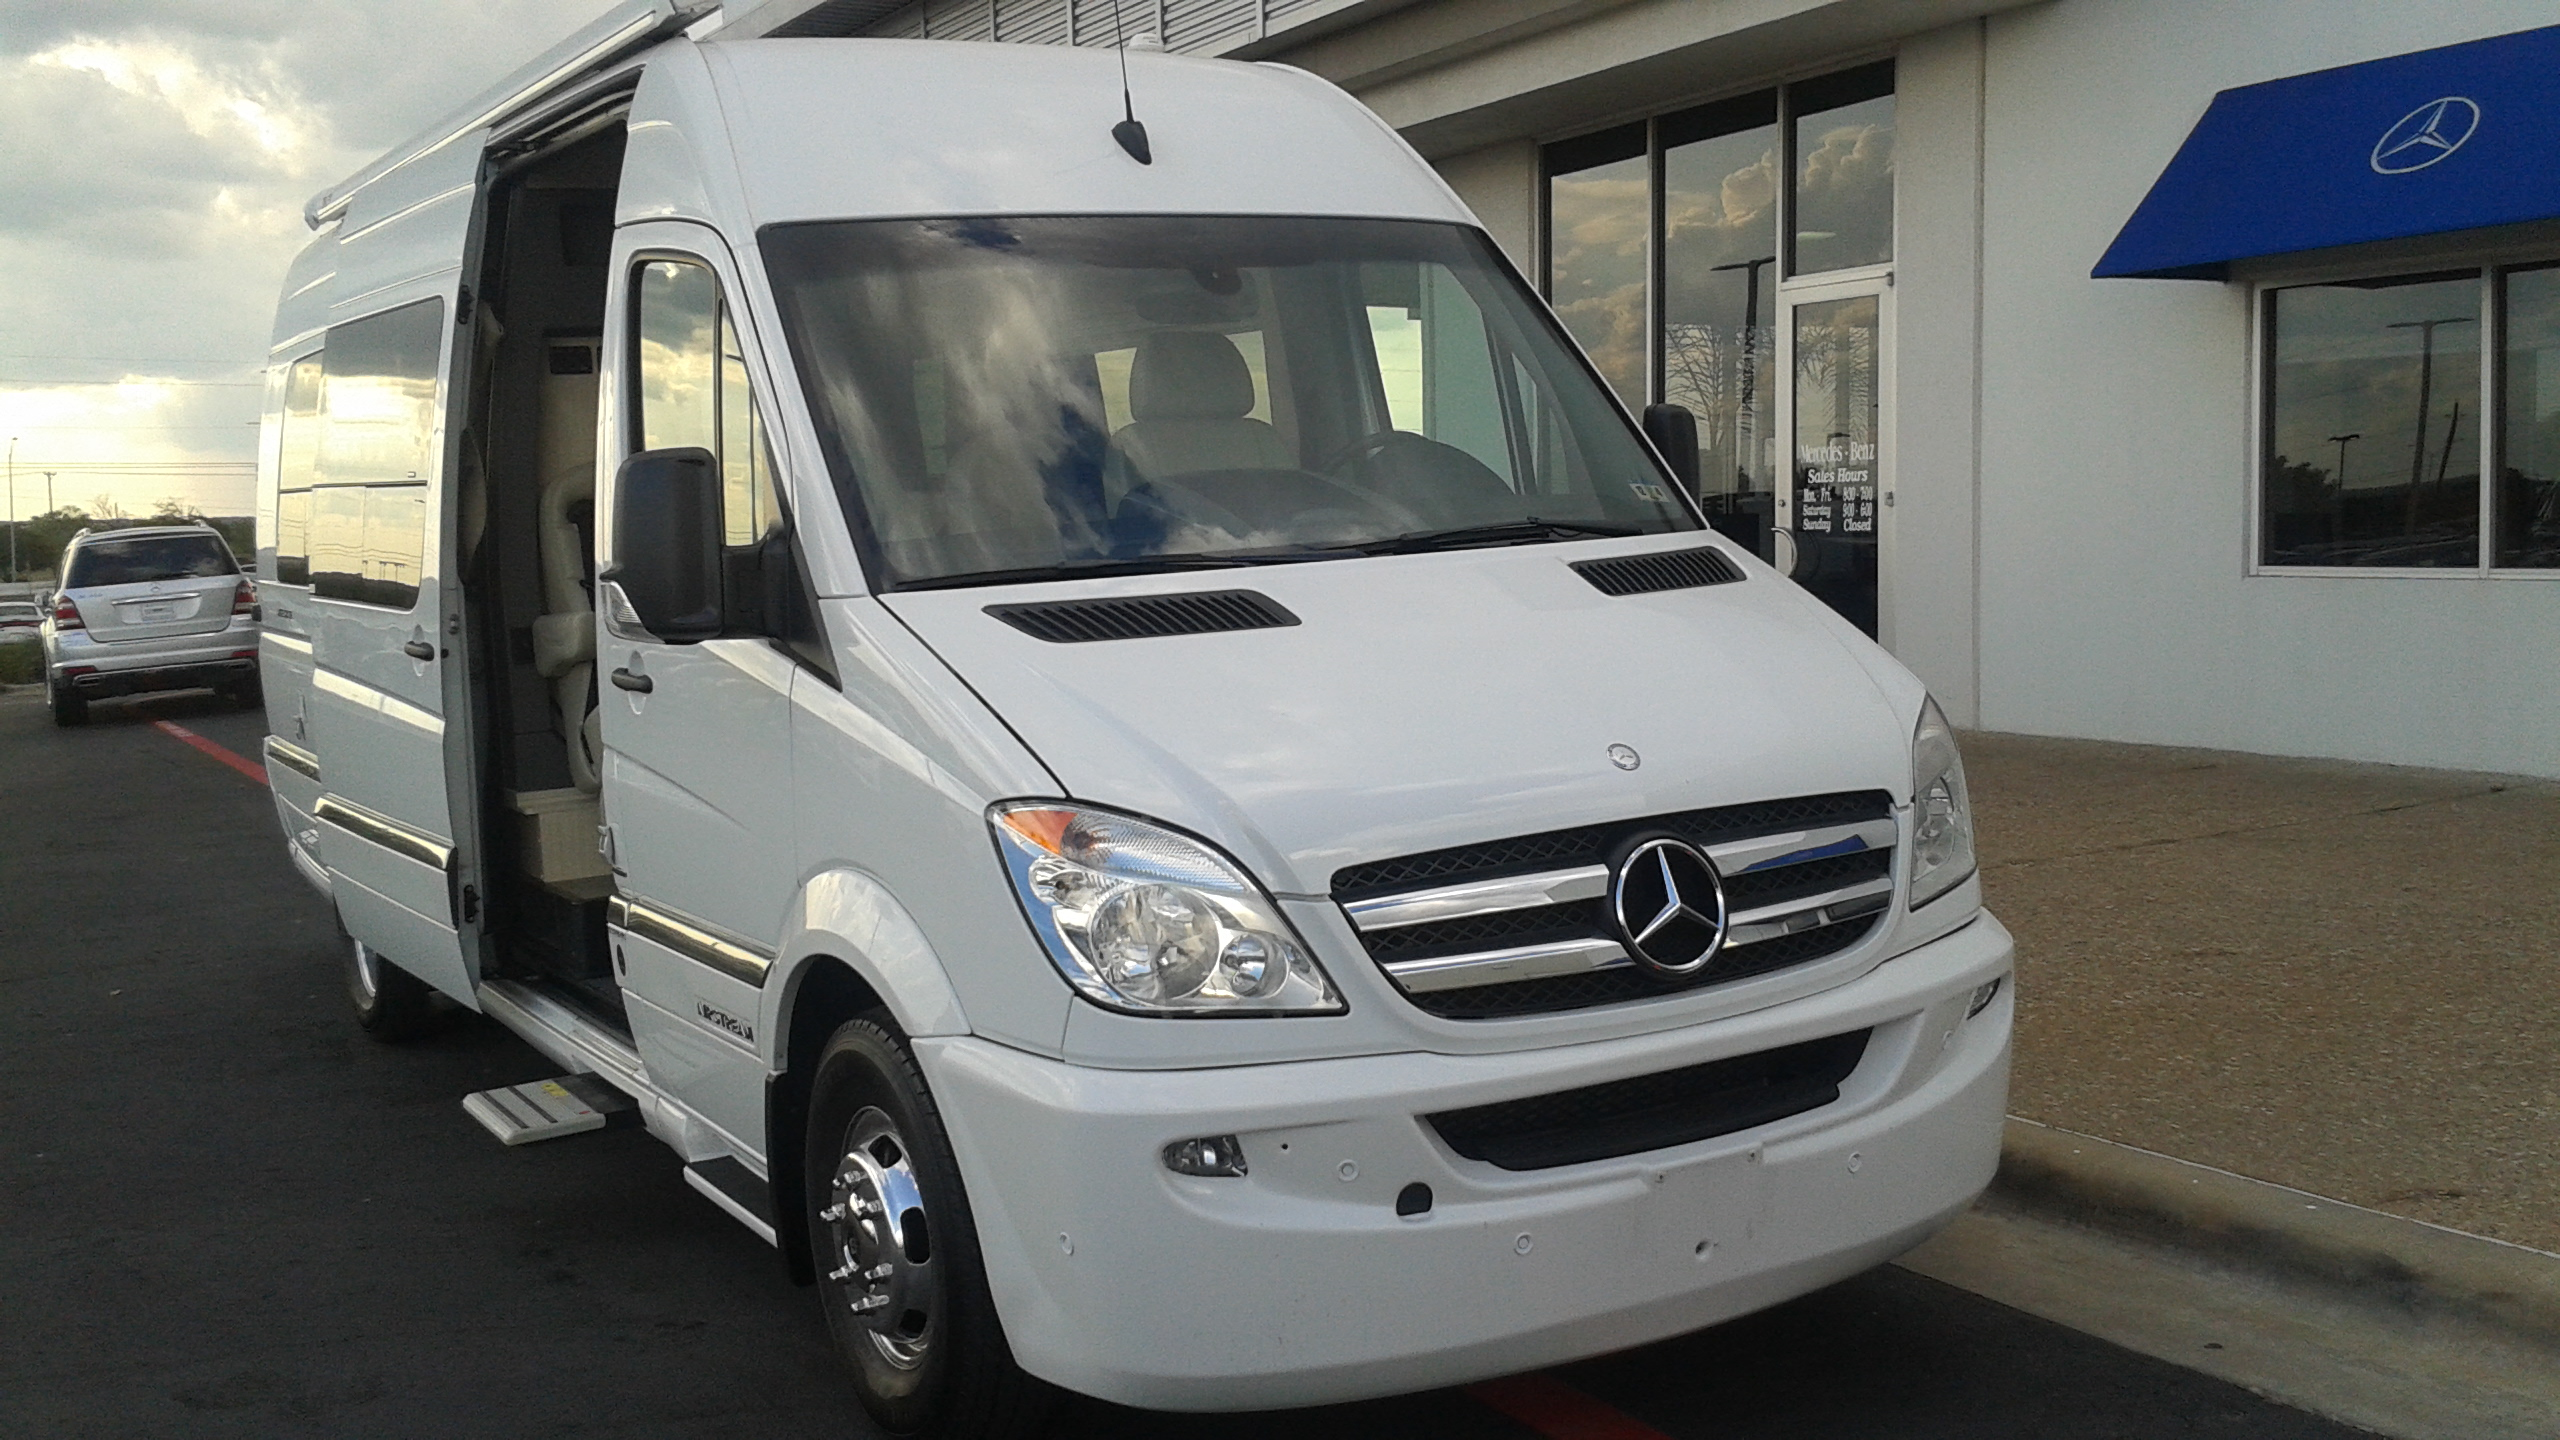 2013 mercedes sprinter airstream interstate autos weblog for Mercedes benz airstream interstate